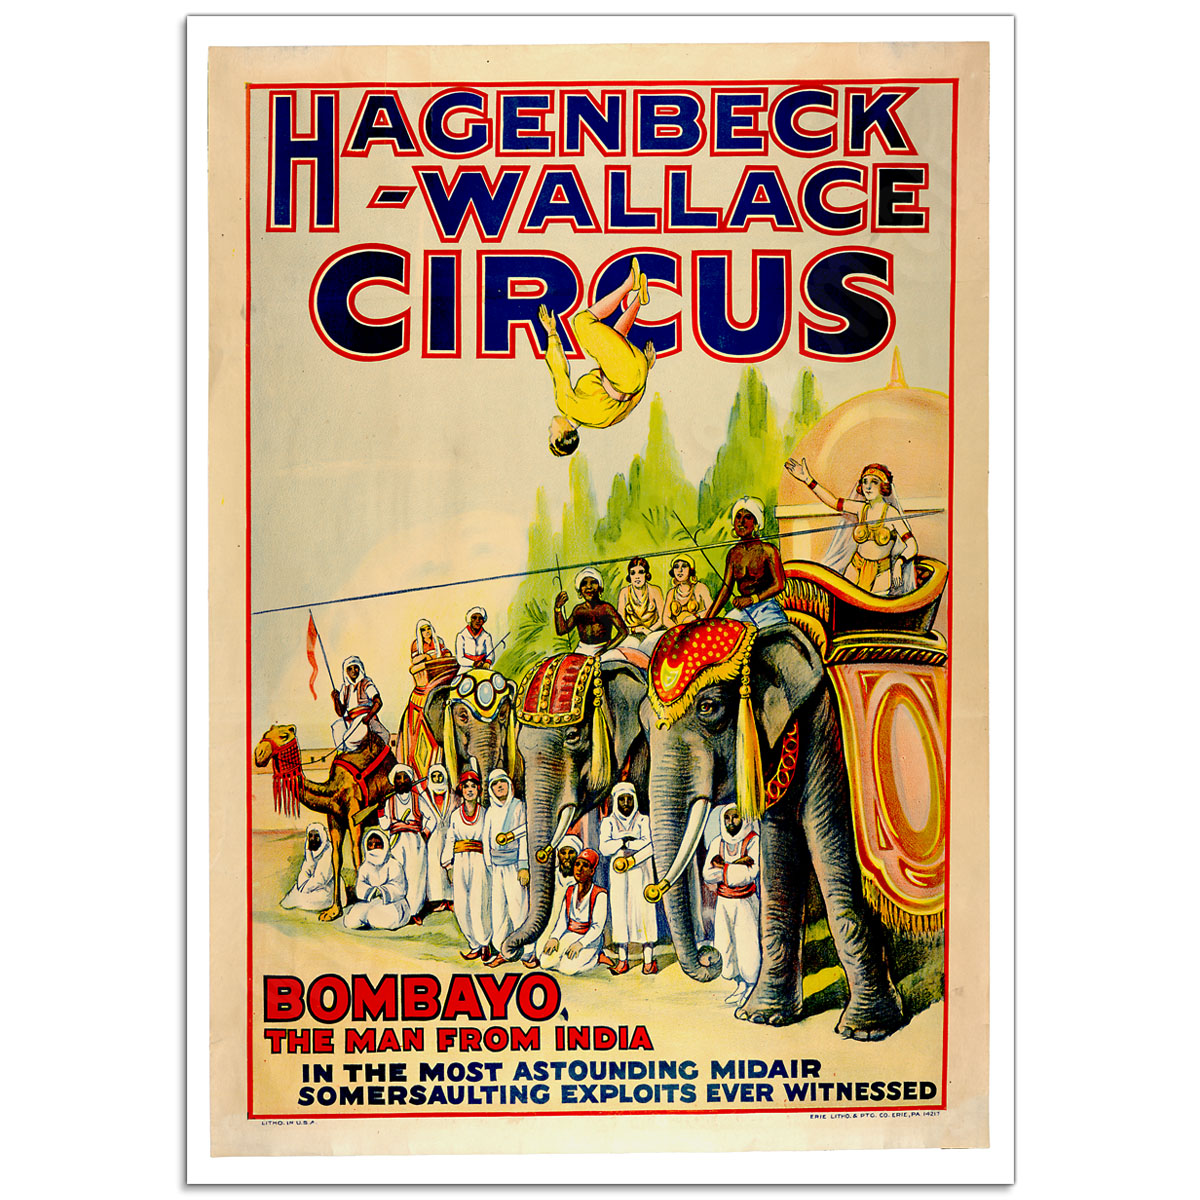 Circus Poster - Hagenbeck-Wallace, Bombayo - The Man from India